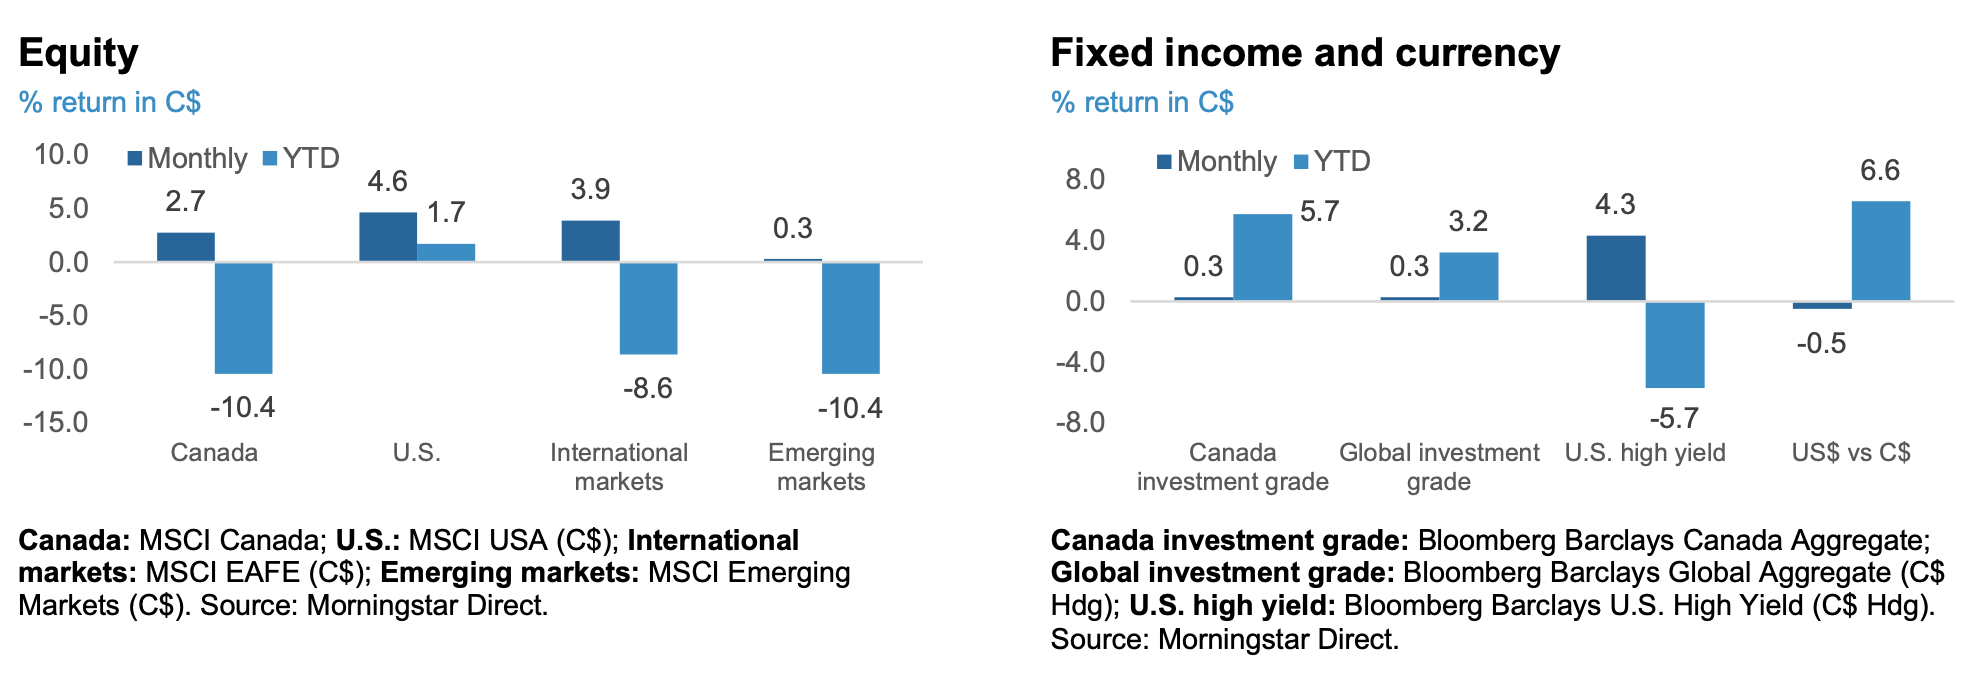 Equity and Fixed income and currency